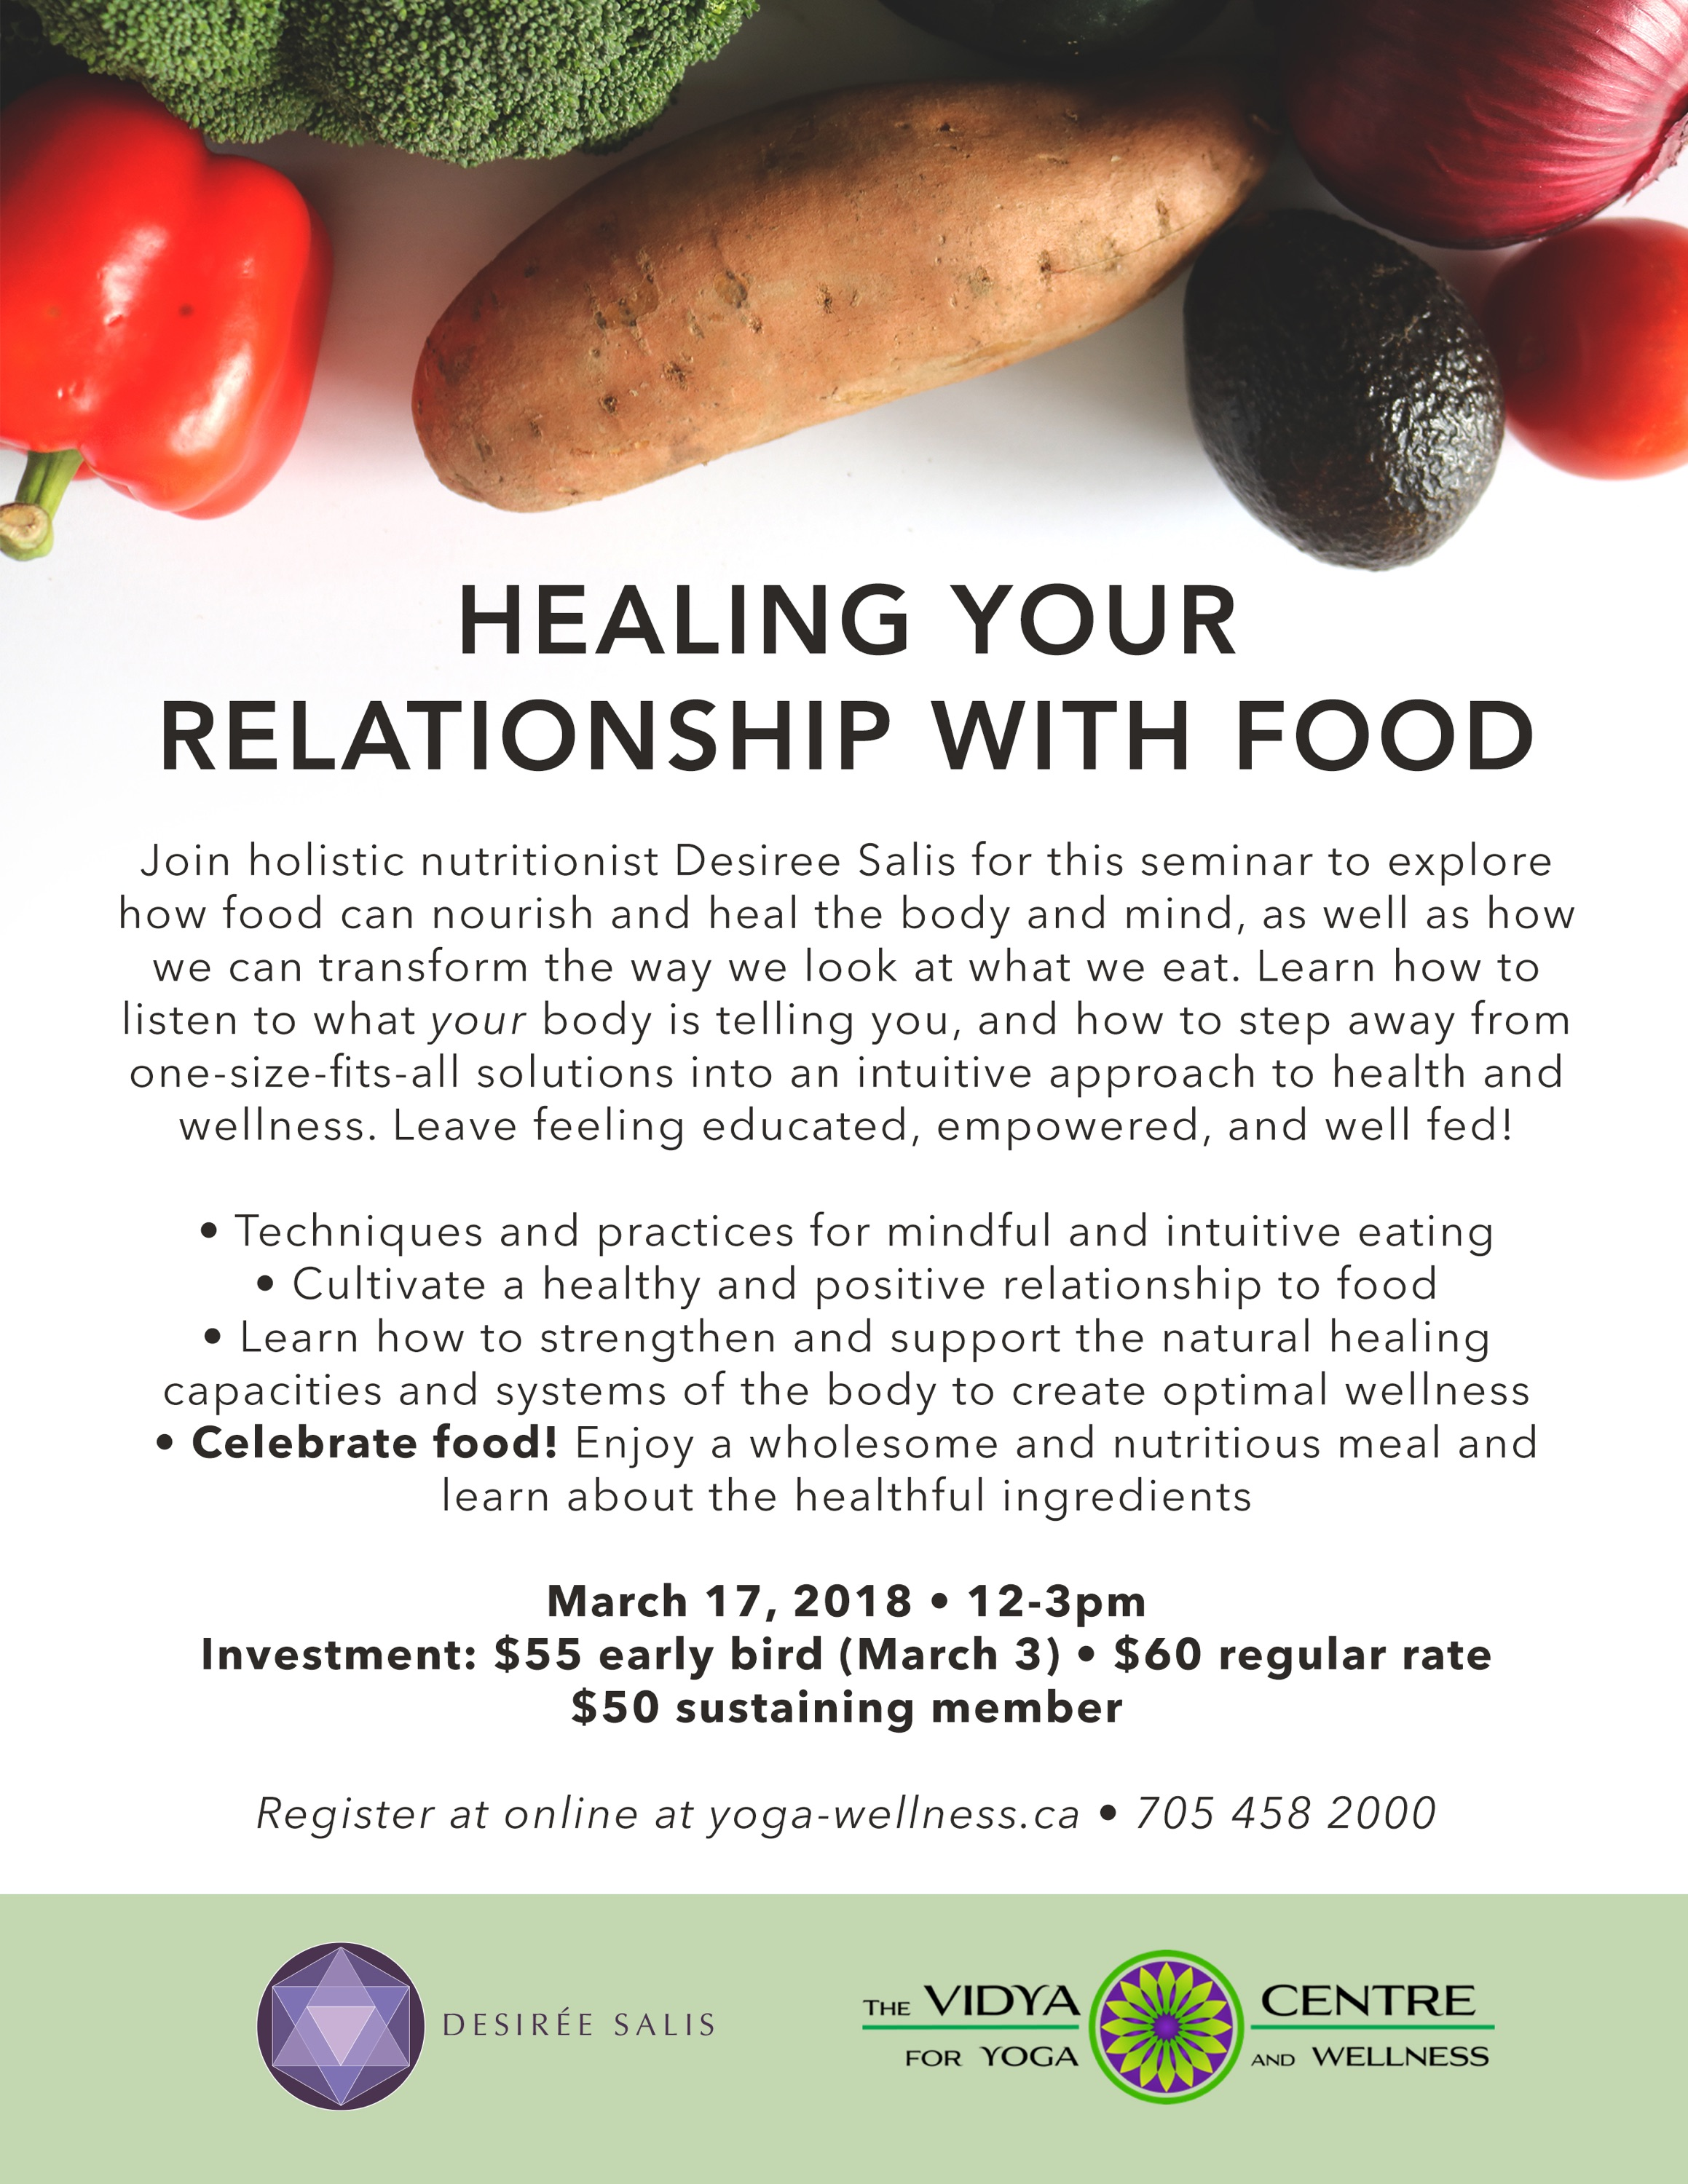 To register for this event please call the front desk (number on poster) or  Email Desiree Directly